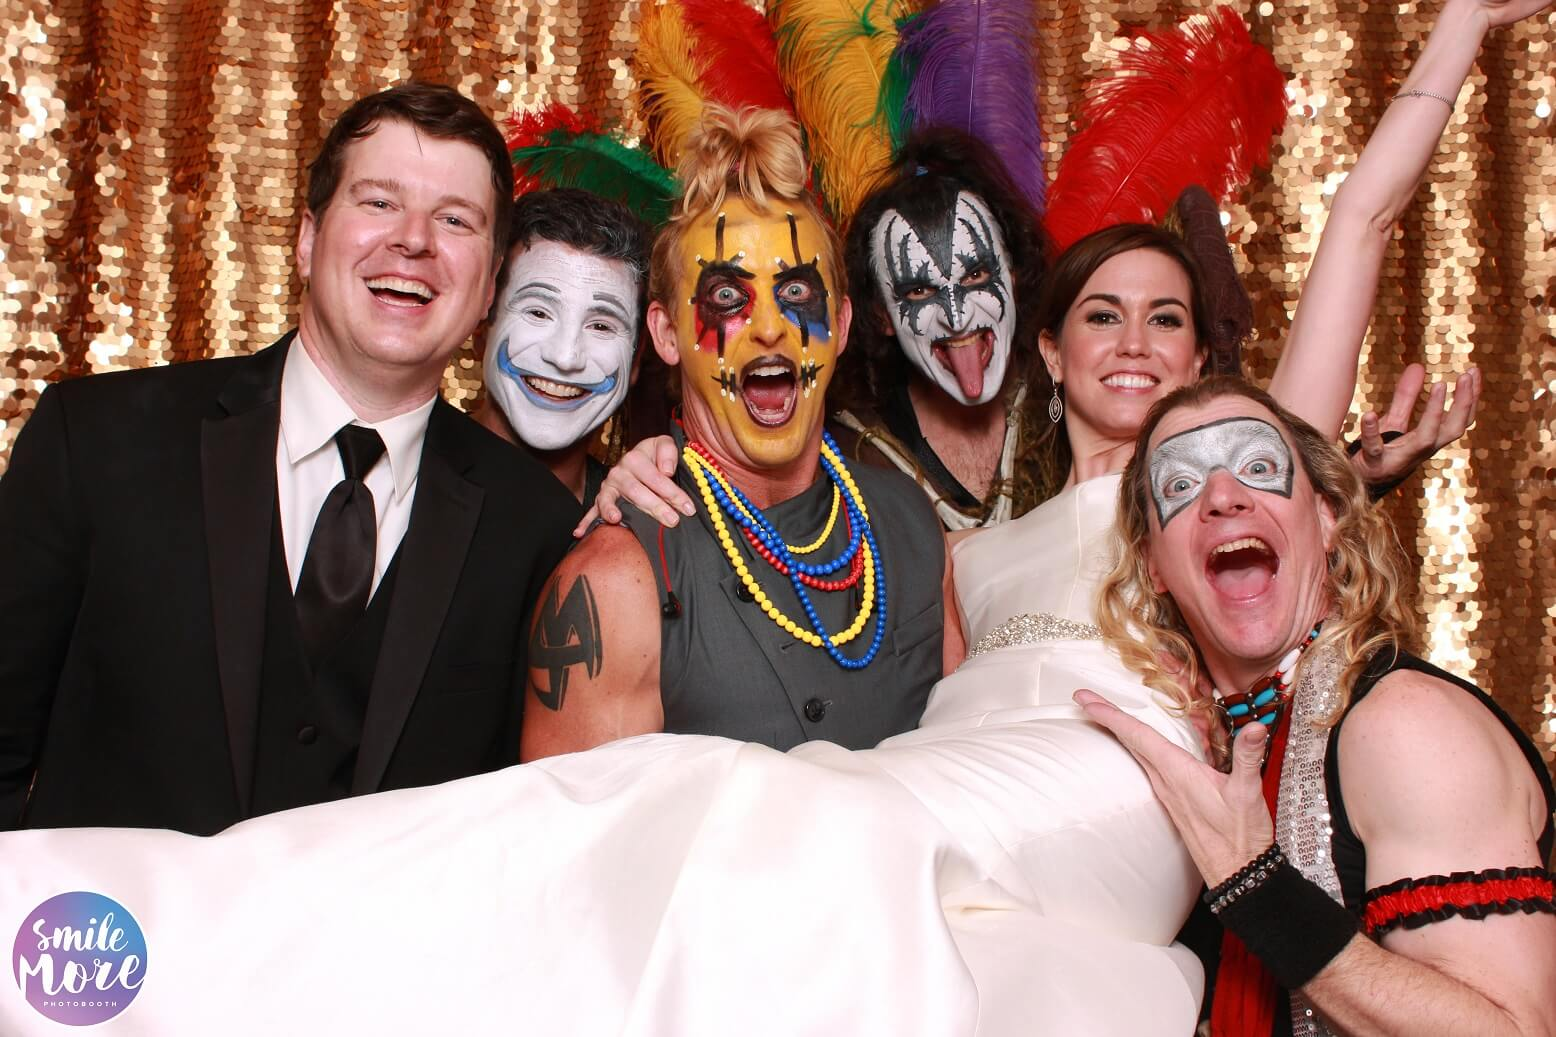 live wedding bands, Corporate events, booking entertainers, Private parties, holiday parities, booking bands